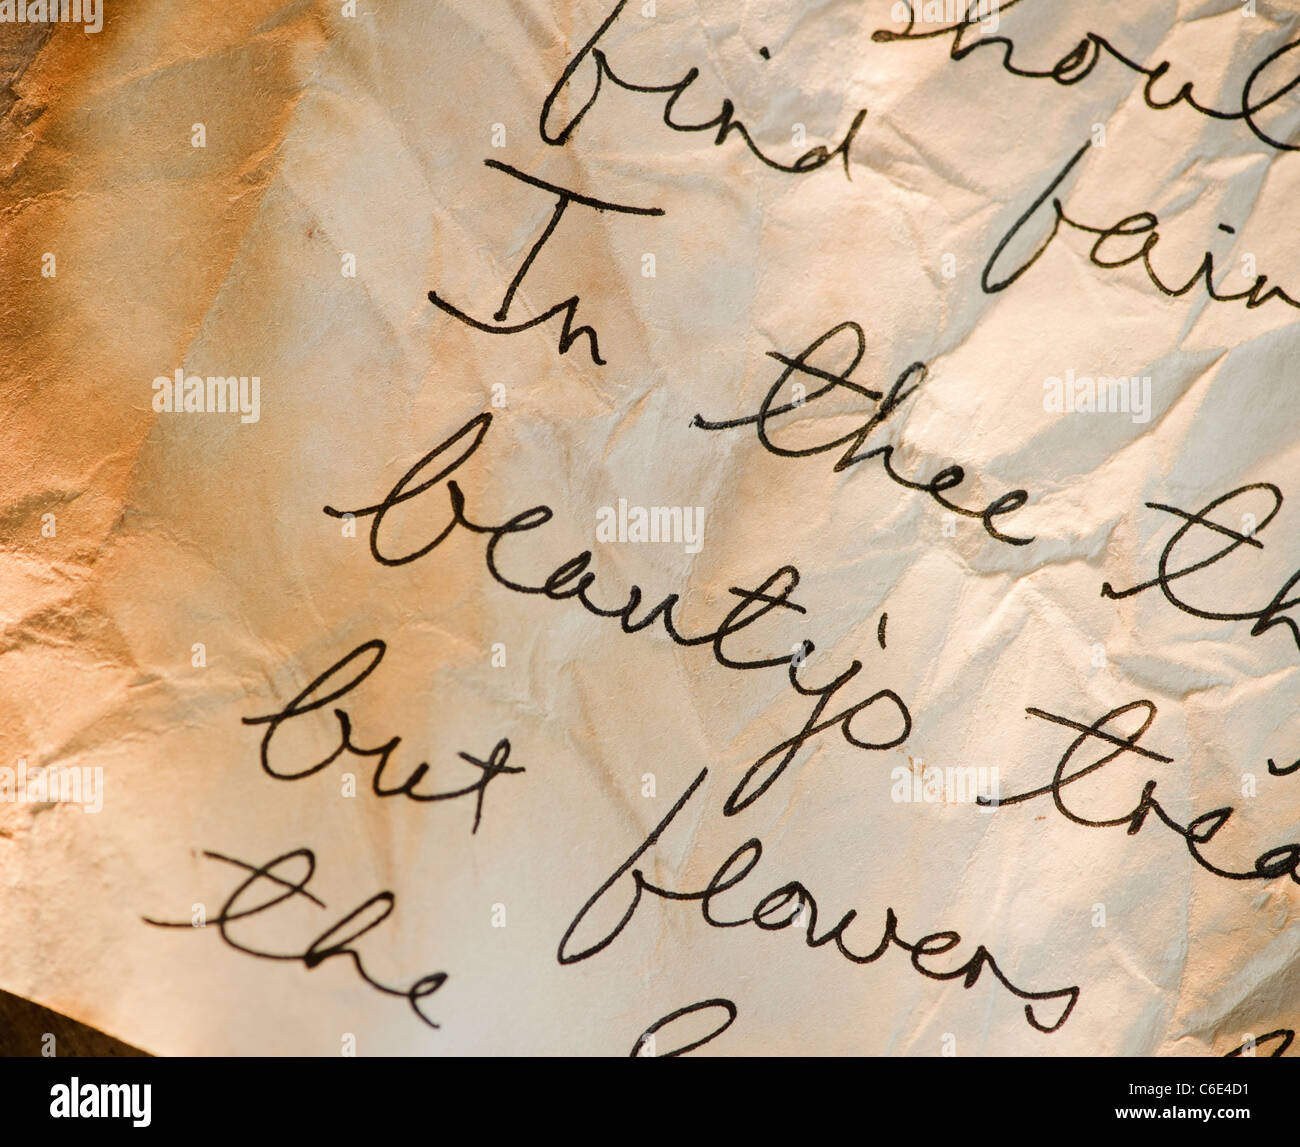 Close up of antique love letter on parchment - Stock Image